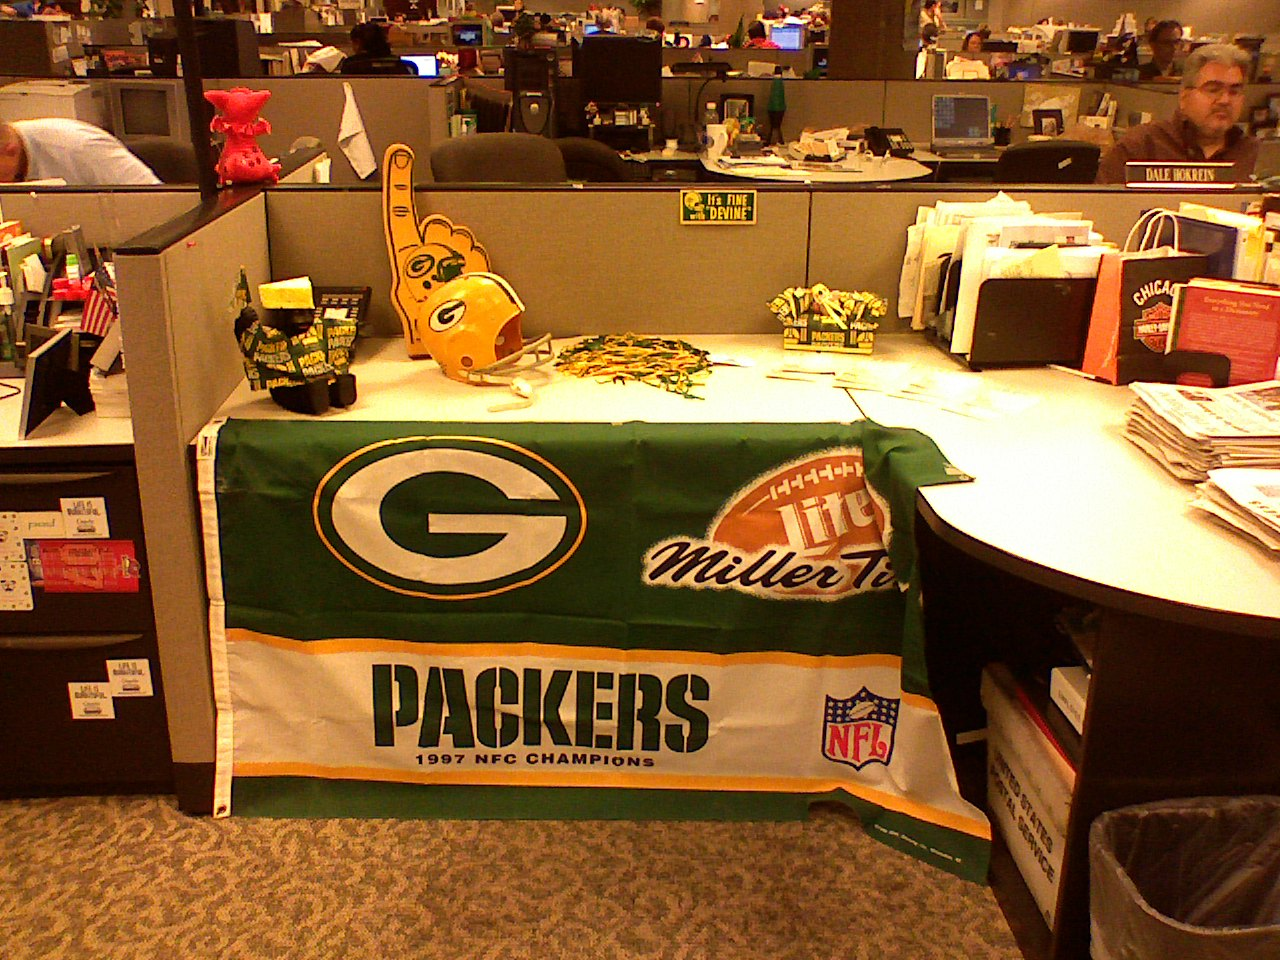 Jerry's Packers shrine